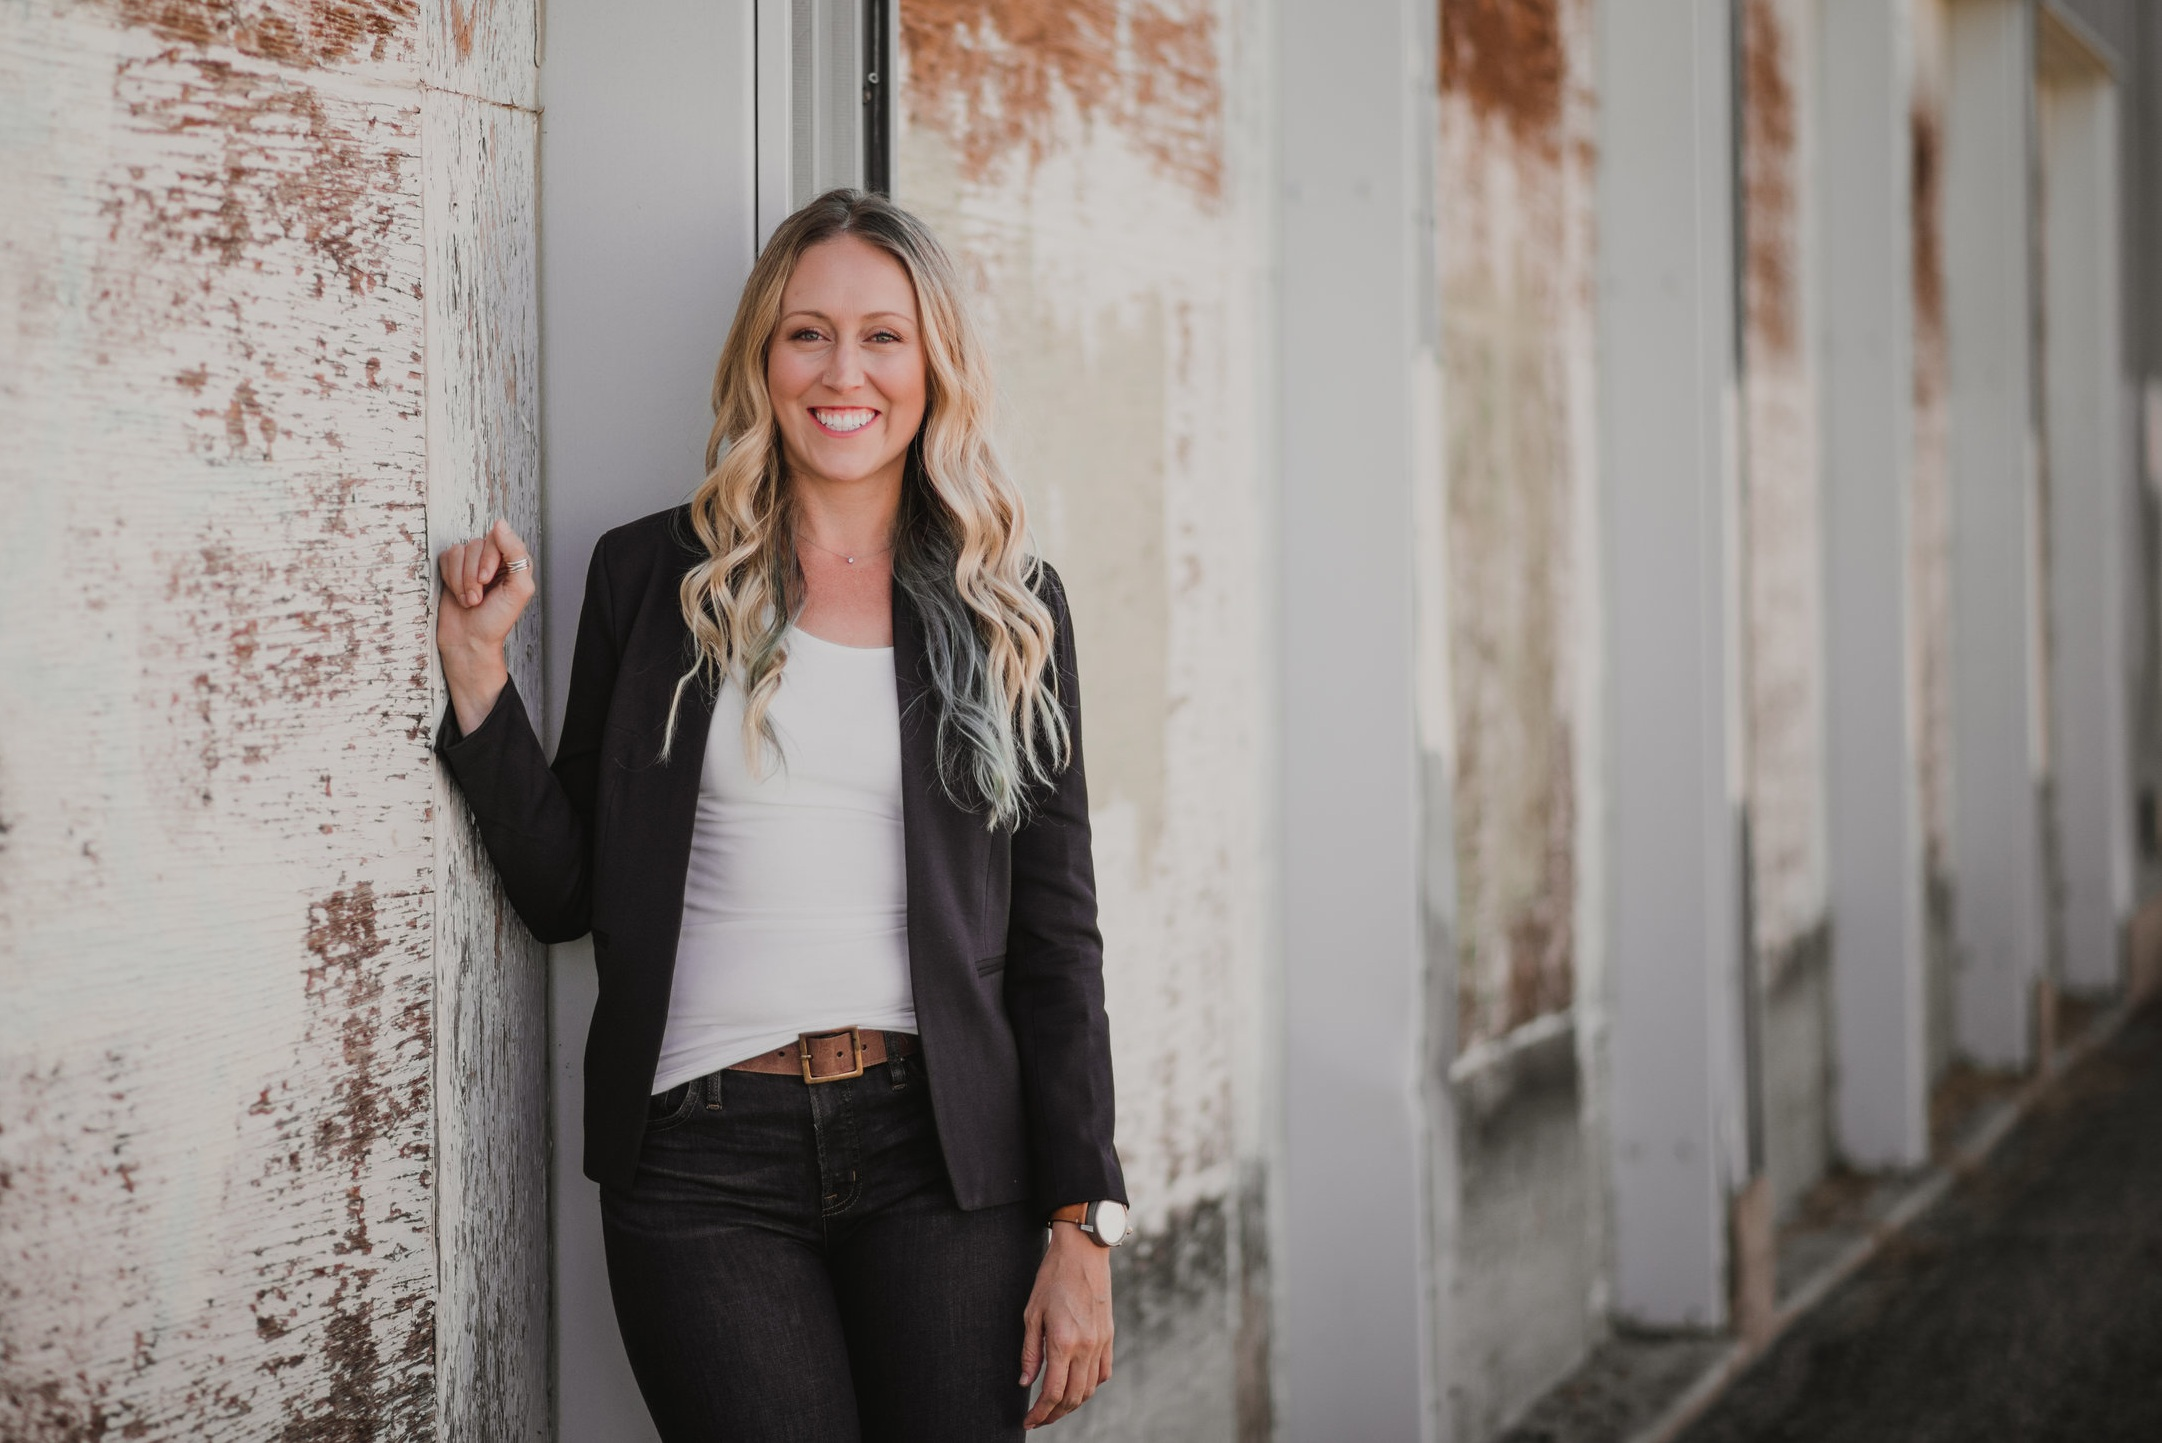 Meet Our Founder - After almost 10 years in the corporate world, Lindsay craved in-person community with other entrepreneurial women like her…so she created it.